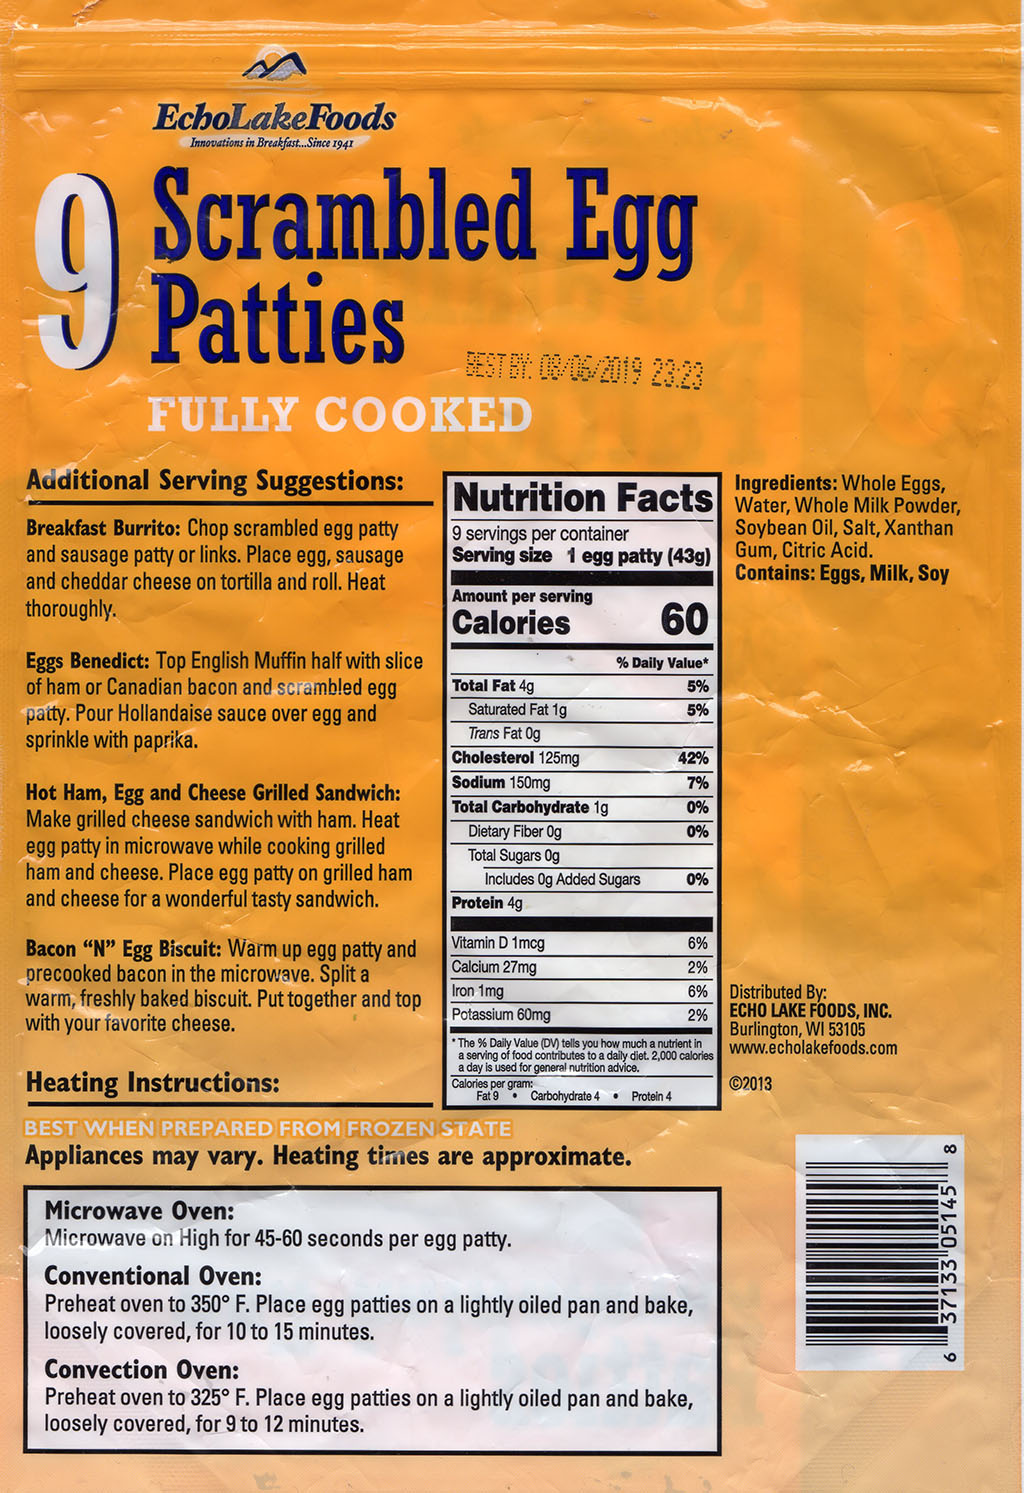 Echo Lake Foods Scrambled Egg Patties - cooking instructions, ingreditents, nutrition